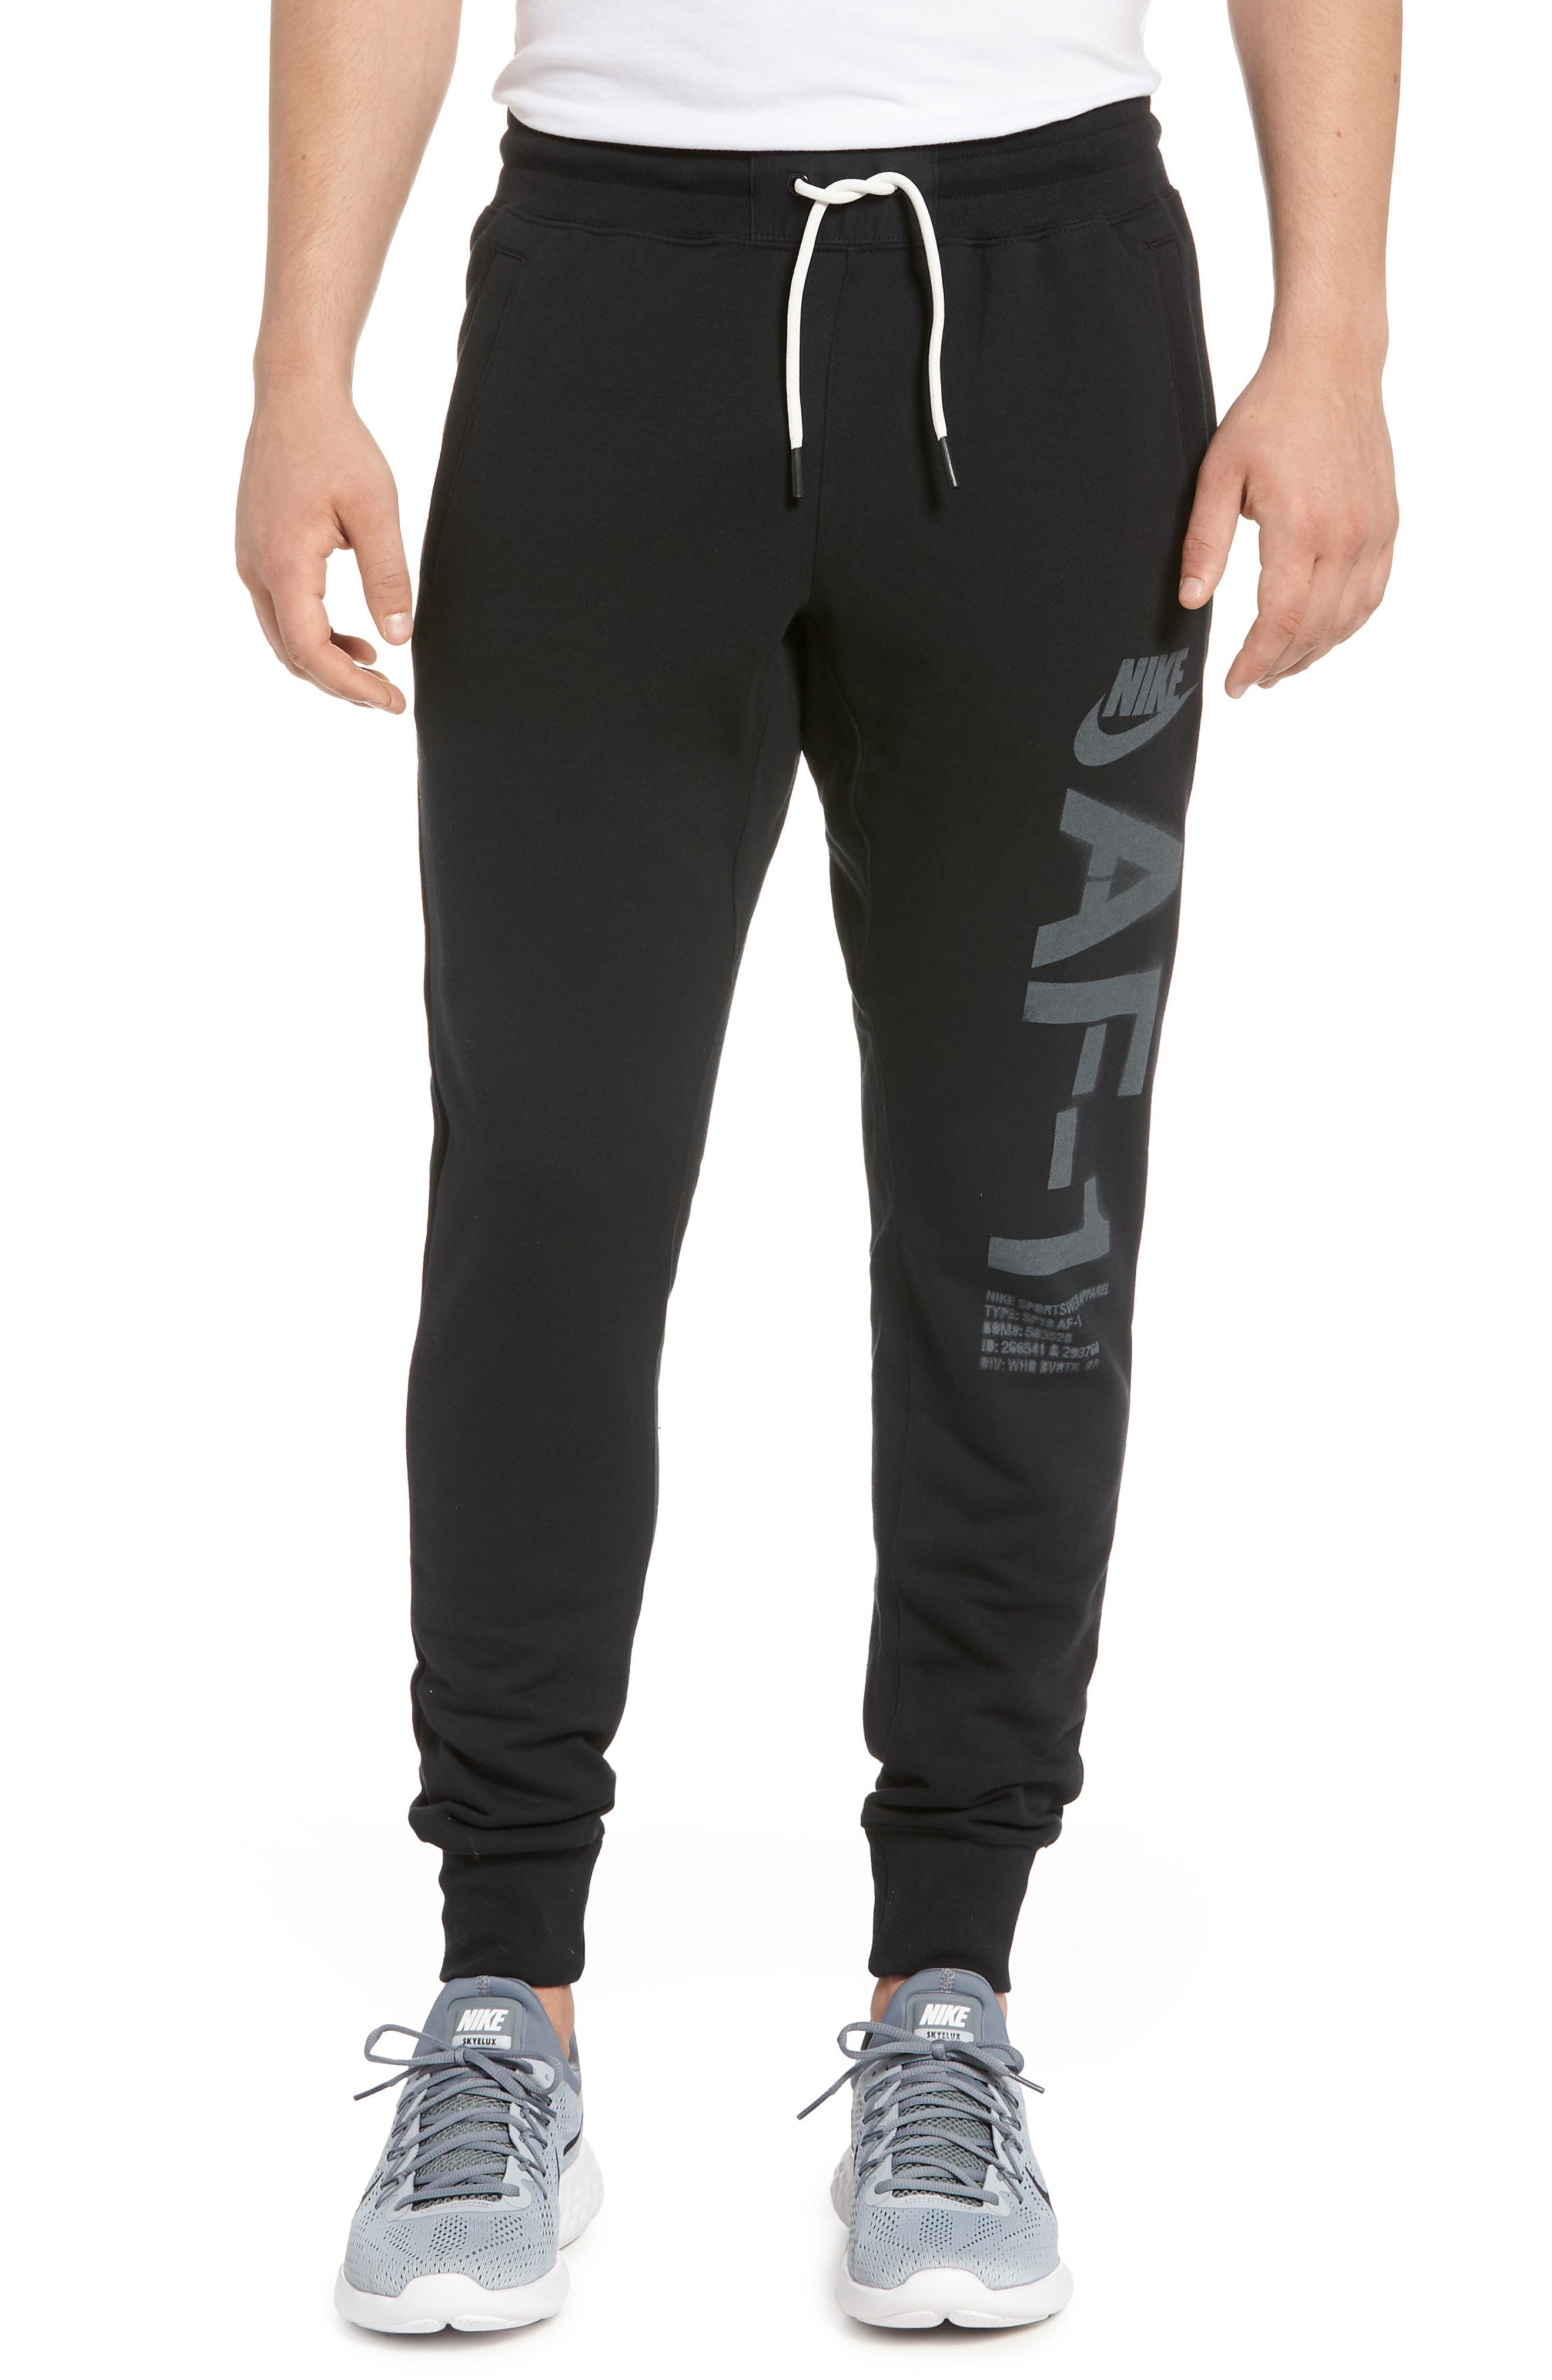 Sportswear Air Force 1 Jogger Pants,                         Main,                         color, BLACK/ ANTHRACITE